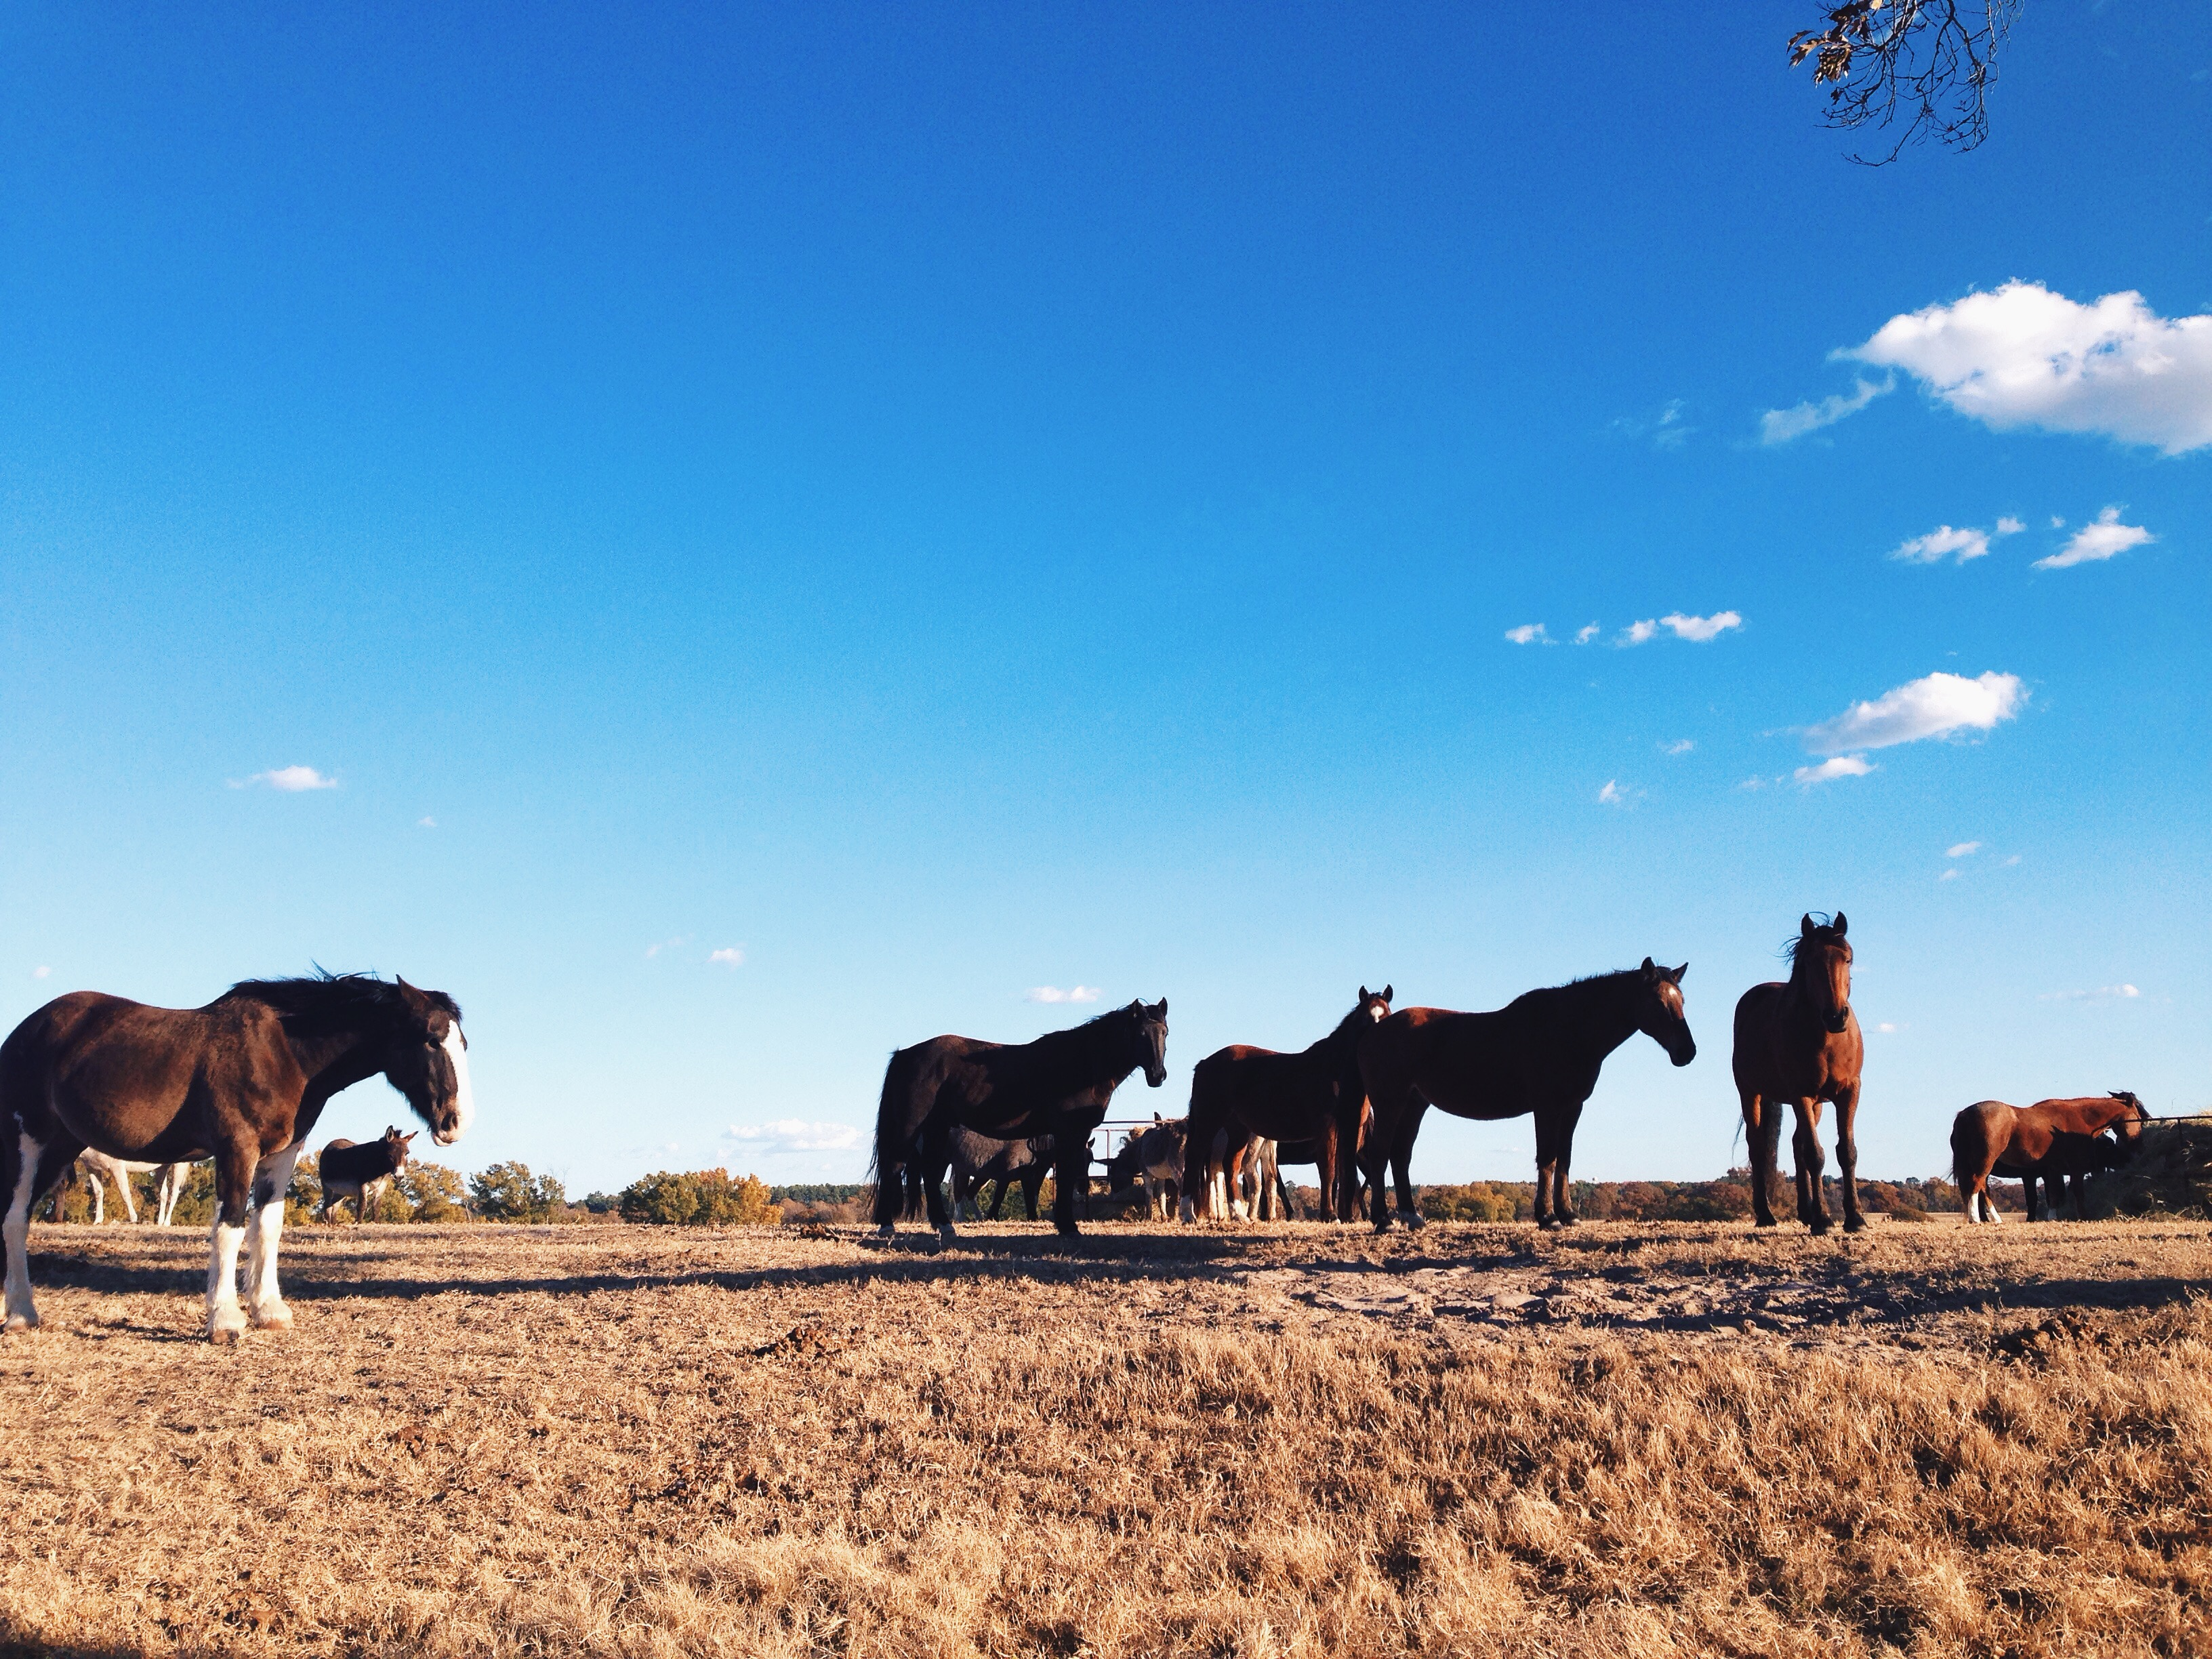 Black beauty ranch in murchison texas — pic 9